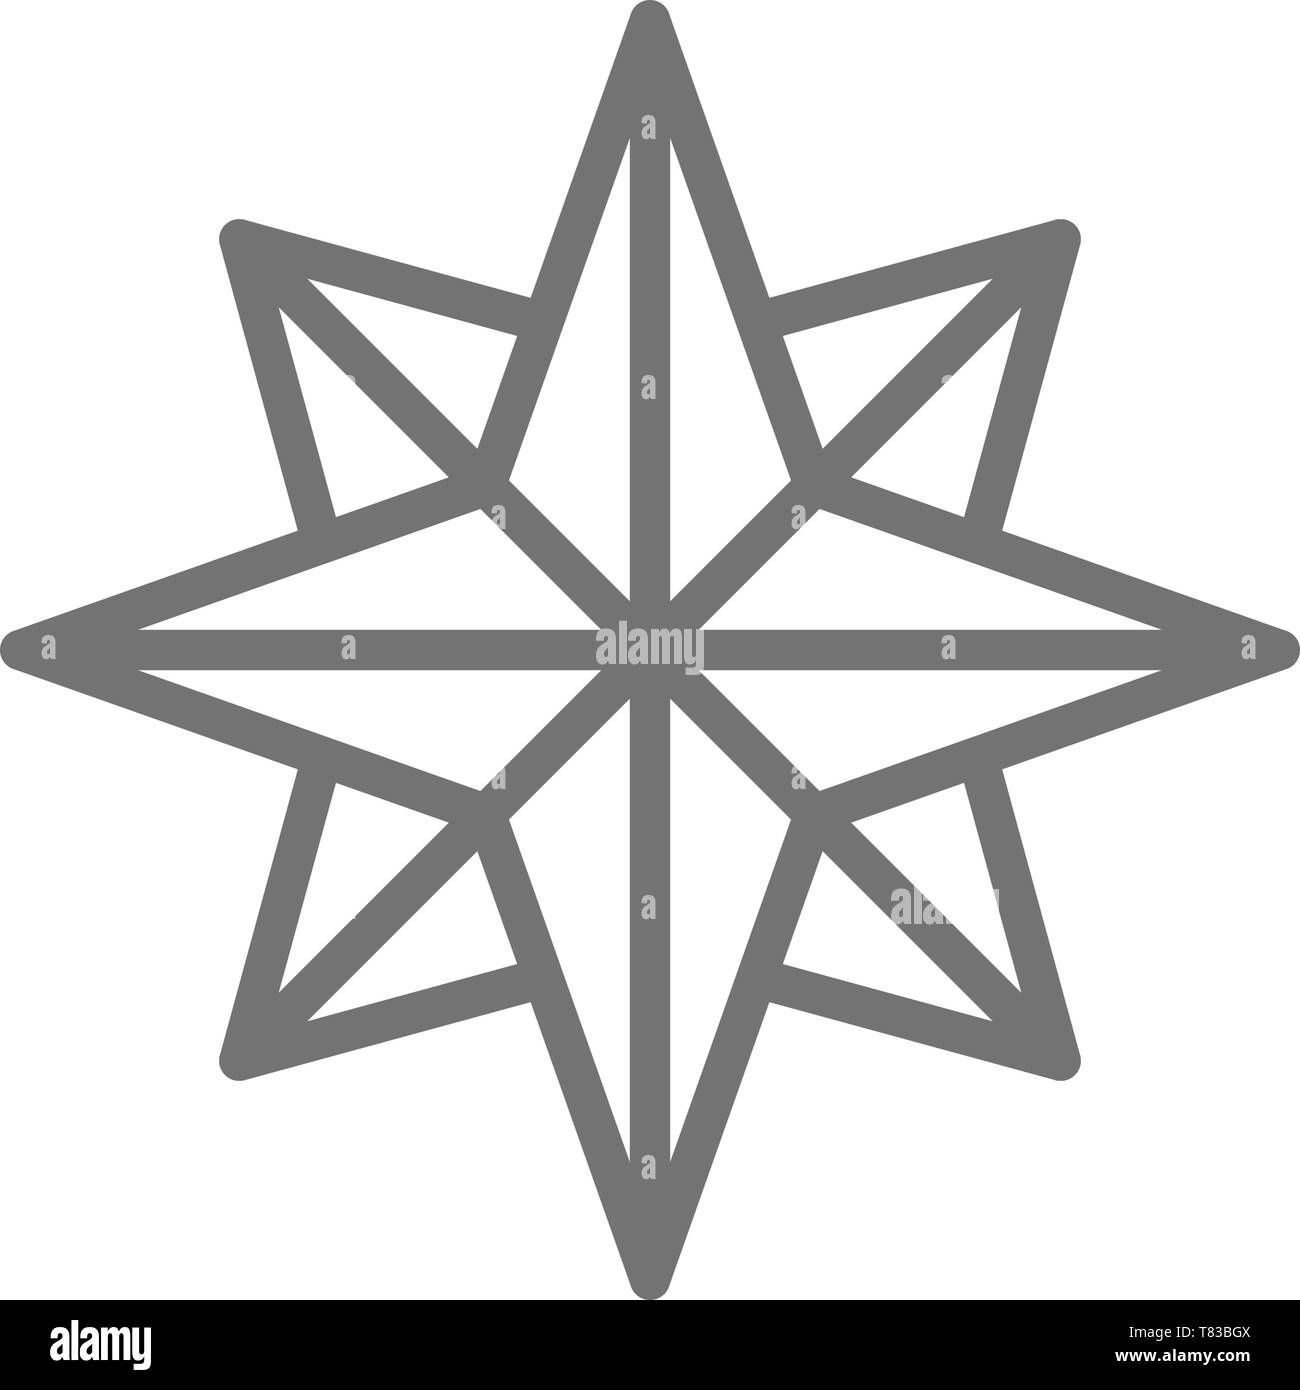 Wind rose, sides of the world, compass, direction, navigation line icon. - Stock Image